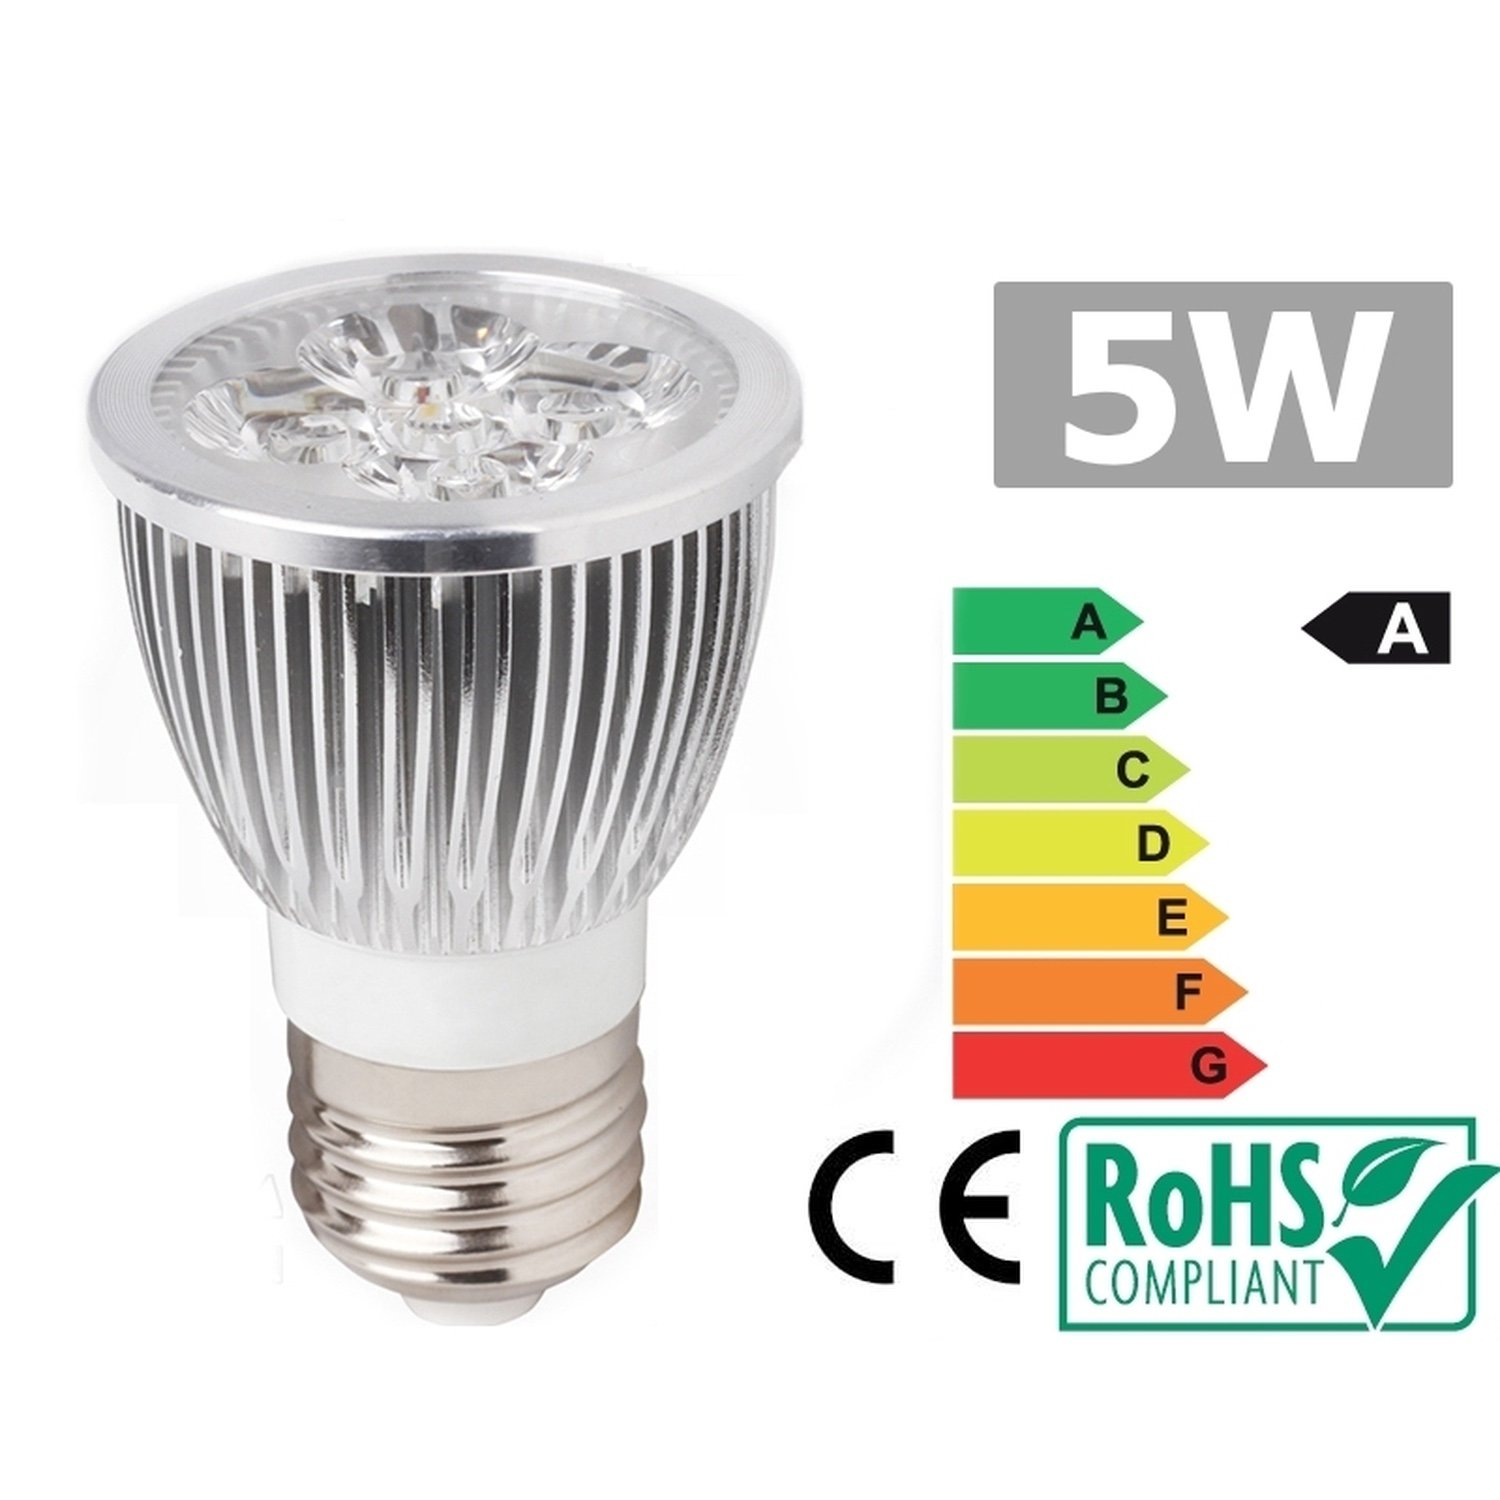 Led Spotlight E27 5W 3300K warm white